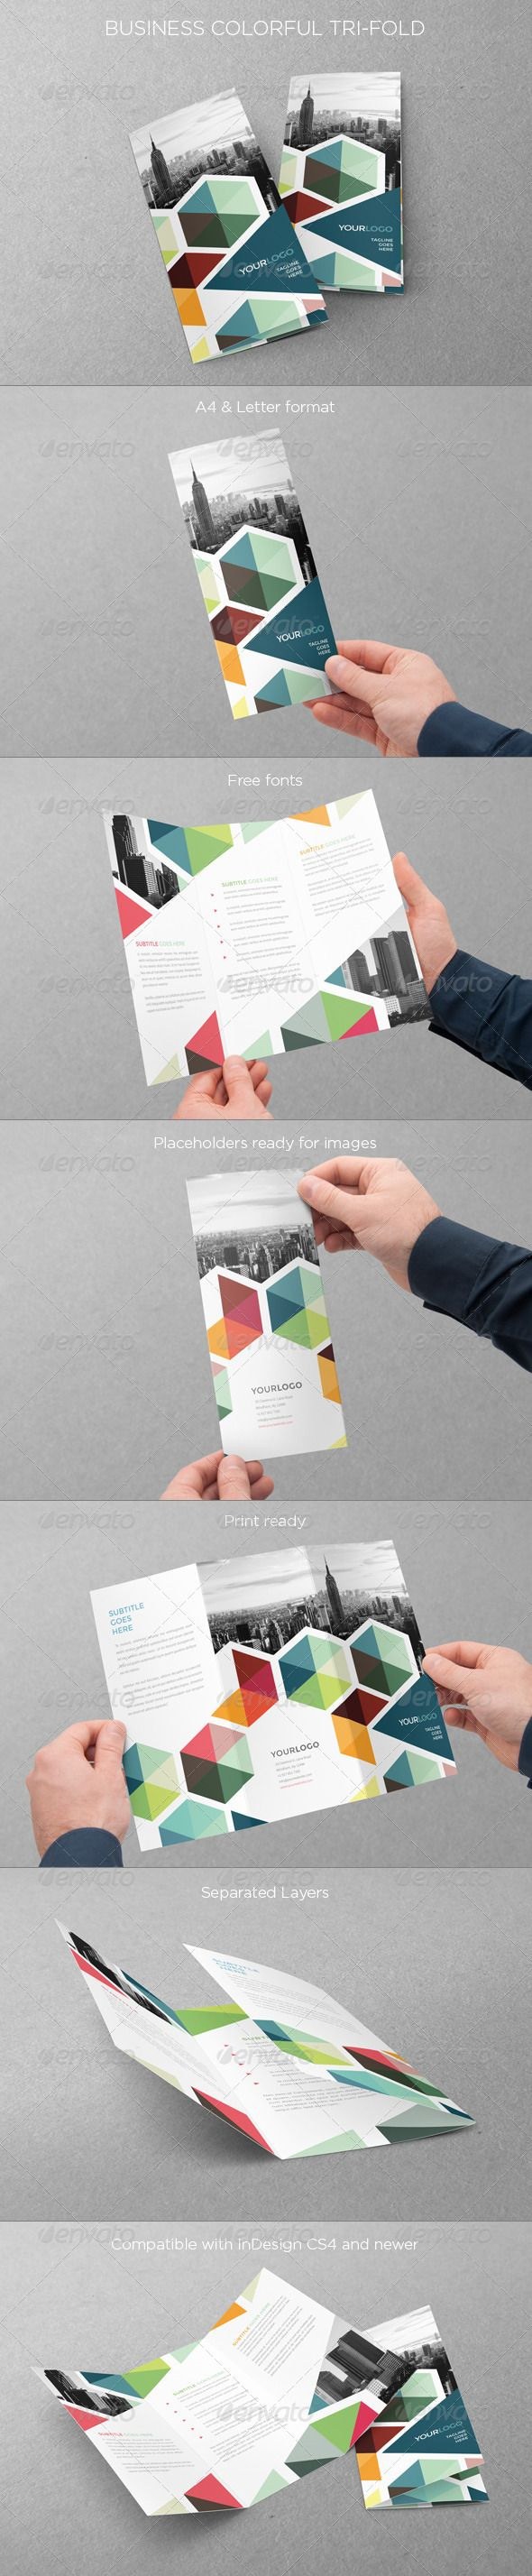 Business Colorful Trifold  —  InDesign Template